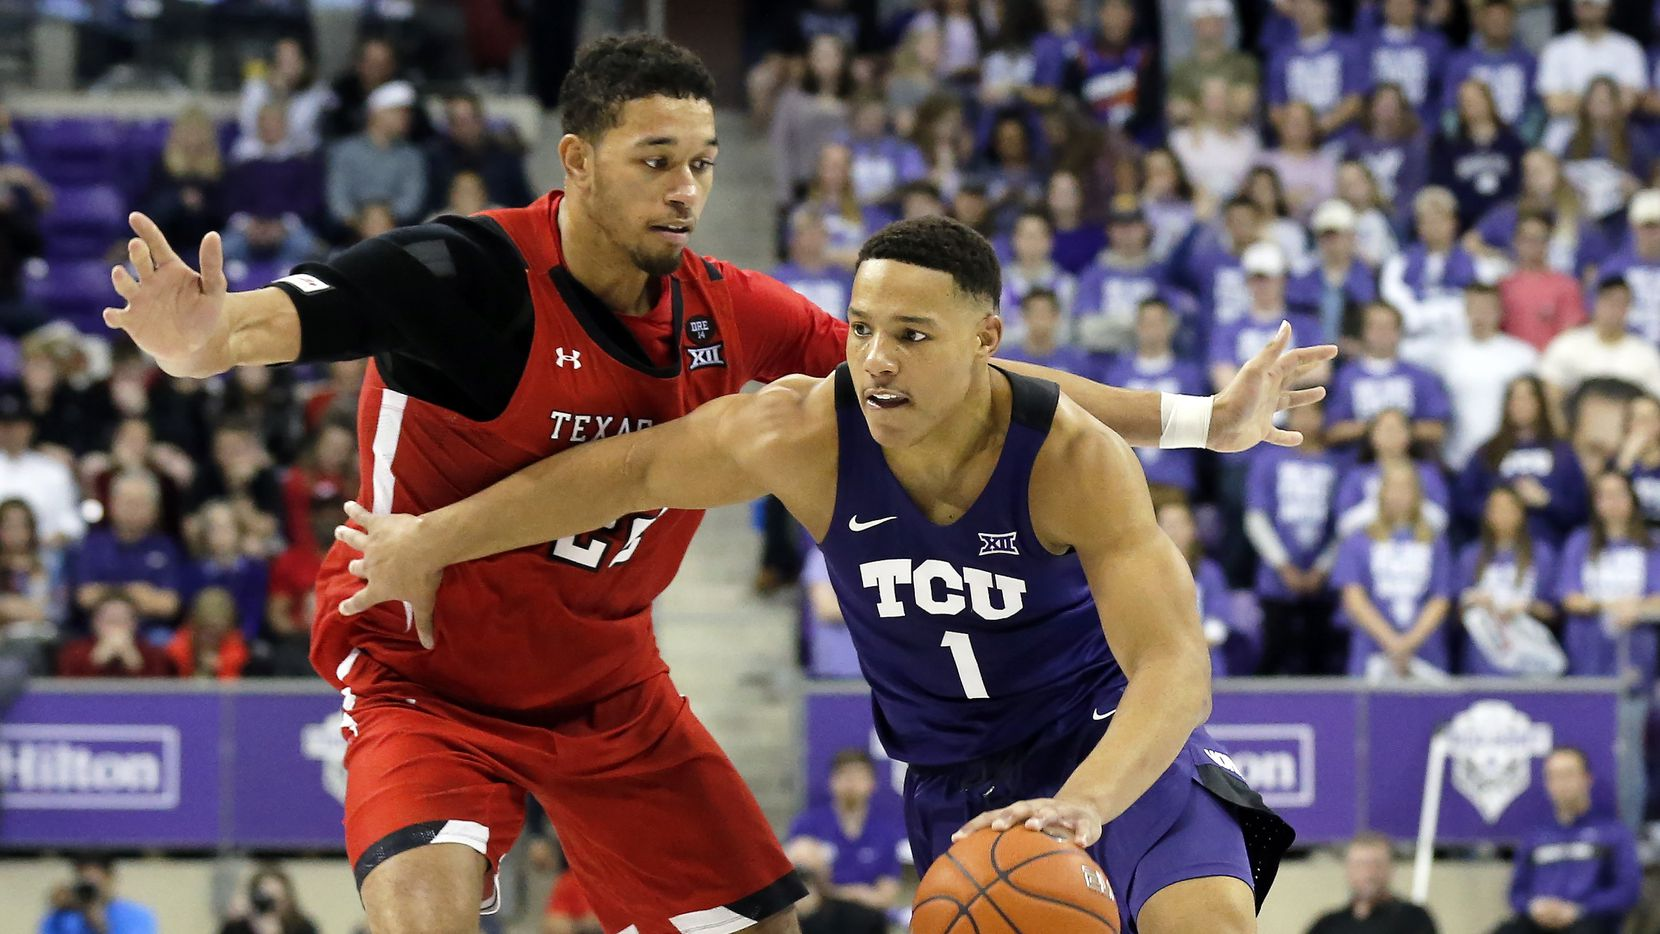 TCU guard Desmond Bane, right, drives to the basket as Texas Tech forward TJ Holyfield, left, defends during the second half of an NCAA college basketball game in Fort Worth, Texas, Tuesday, Jan. 21, 2020. TCU won 65-54.